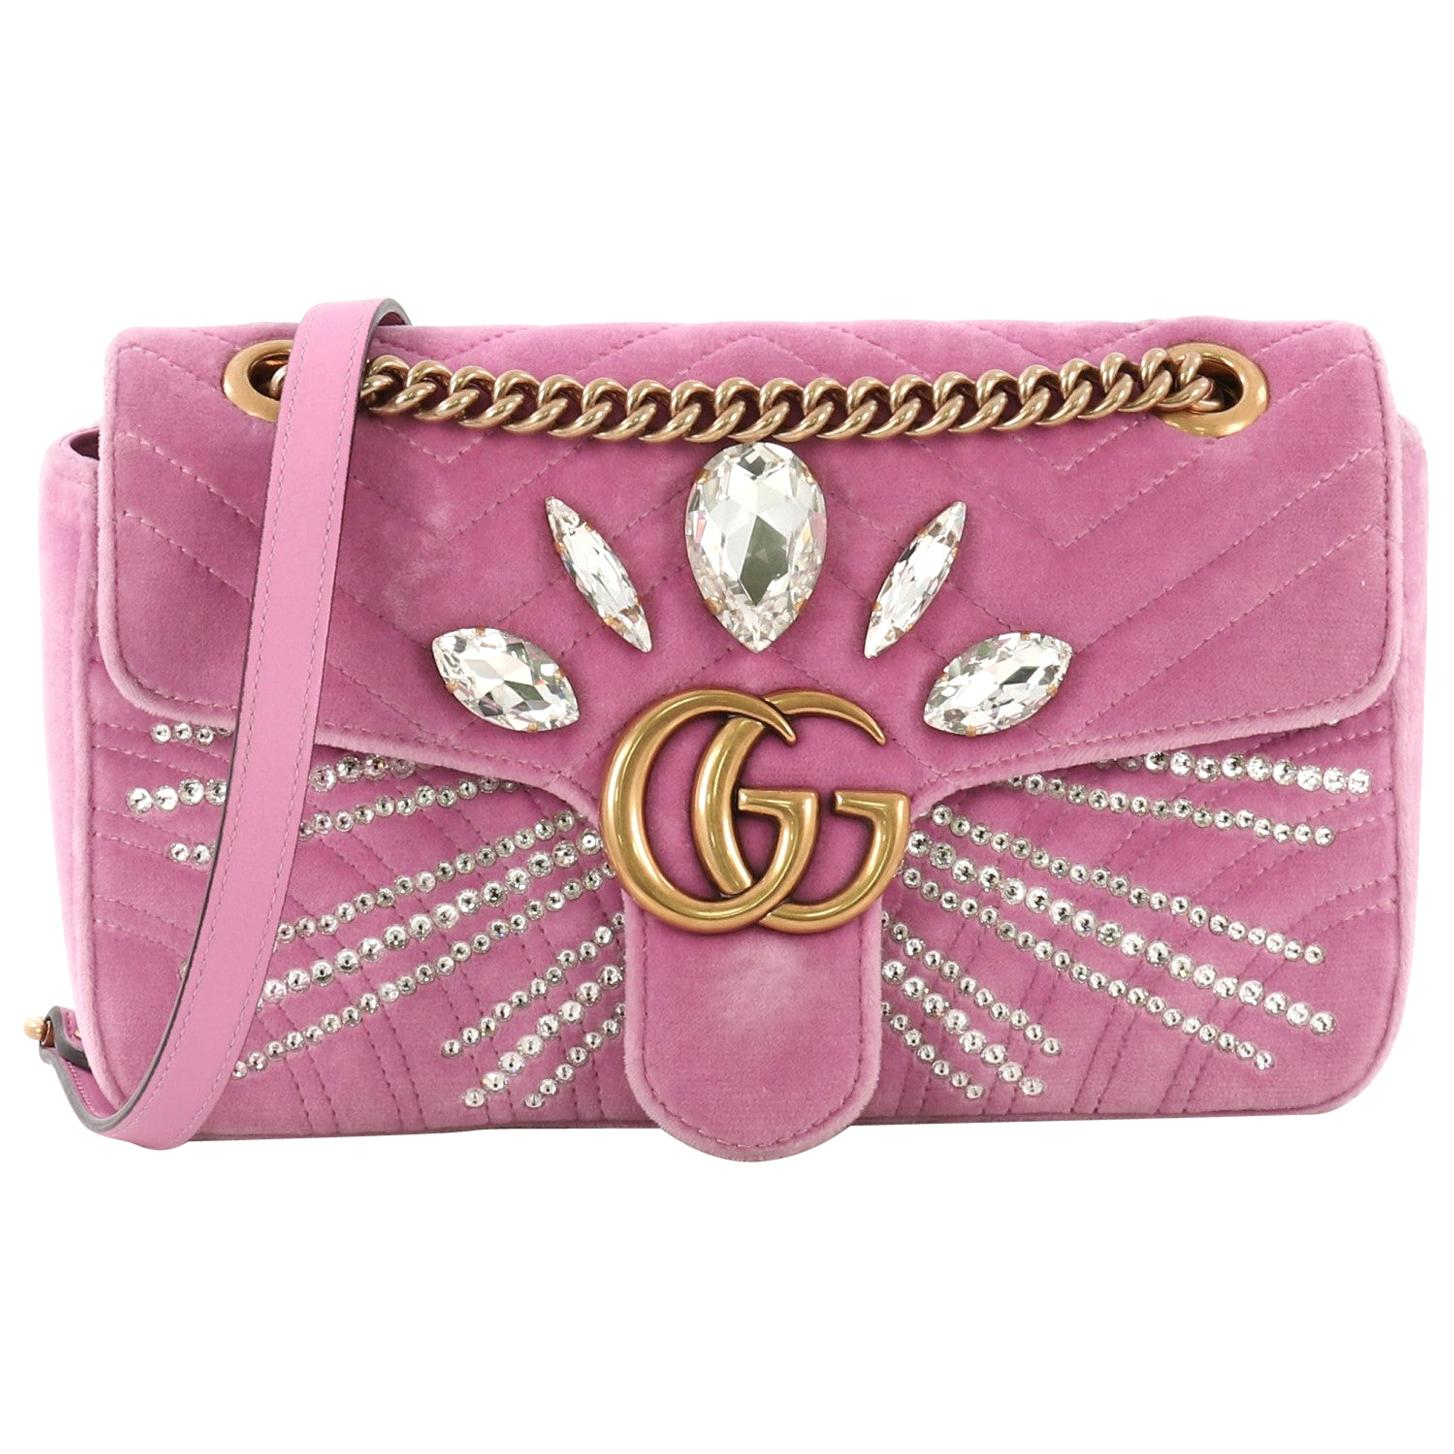 d2f4c3e68888 Vintage Gucci Handbags and Purses - 2,513 For Sale at 1stdibs